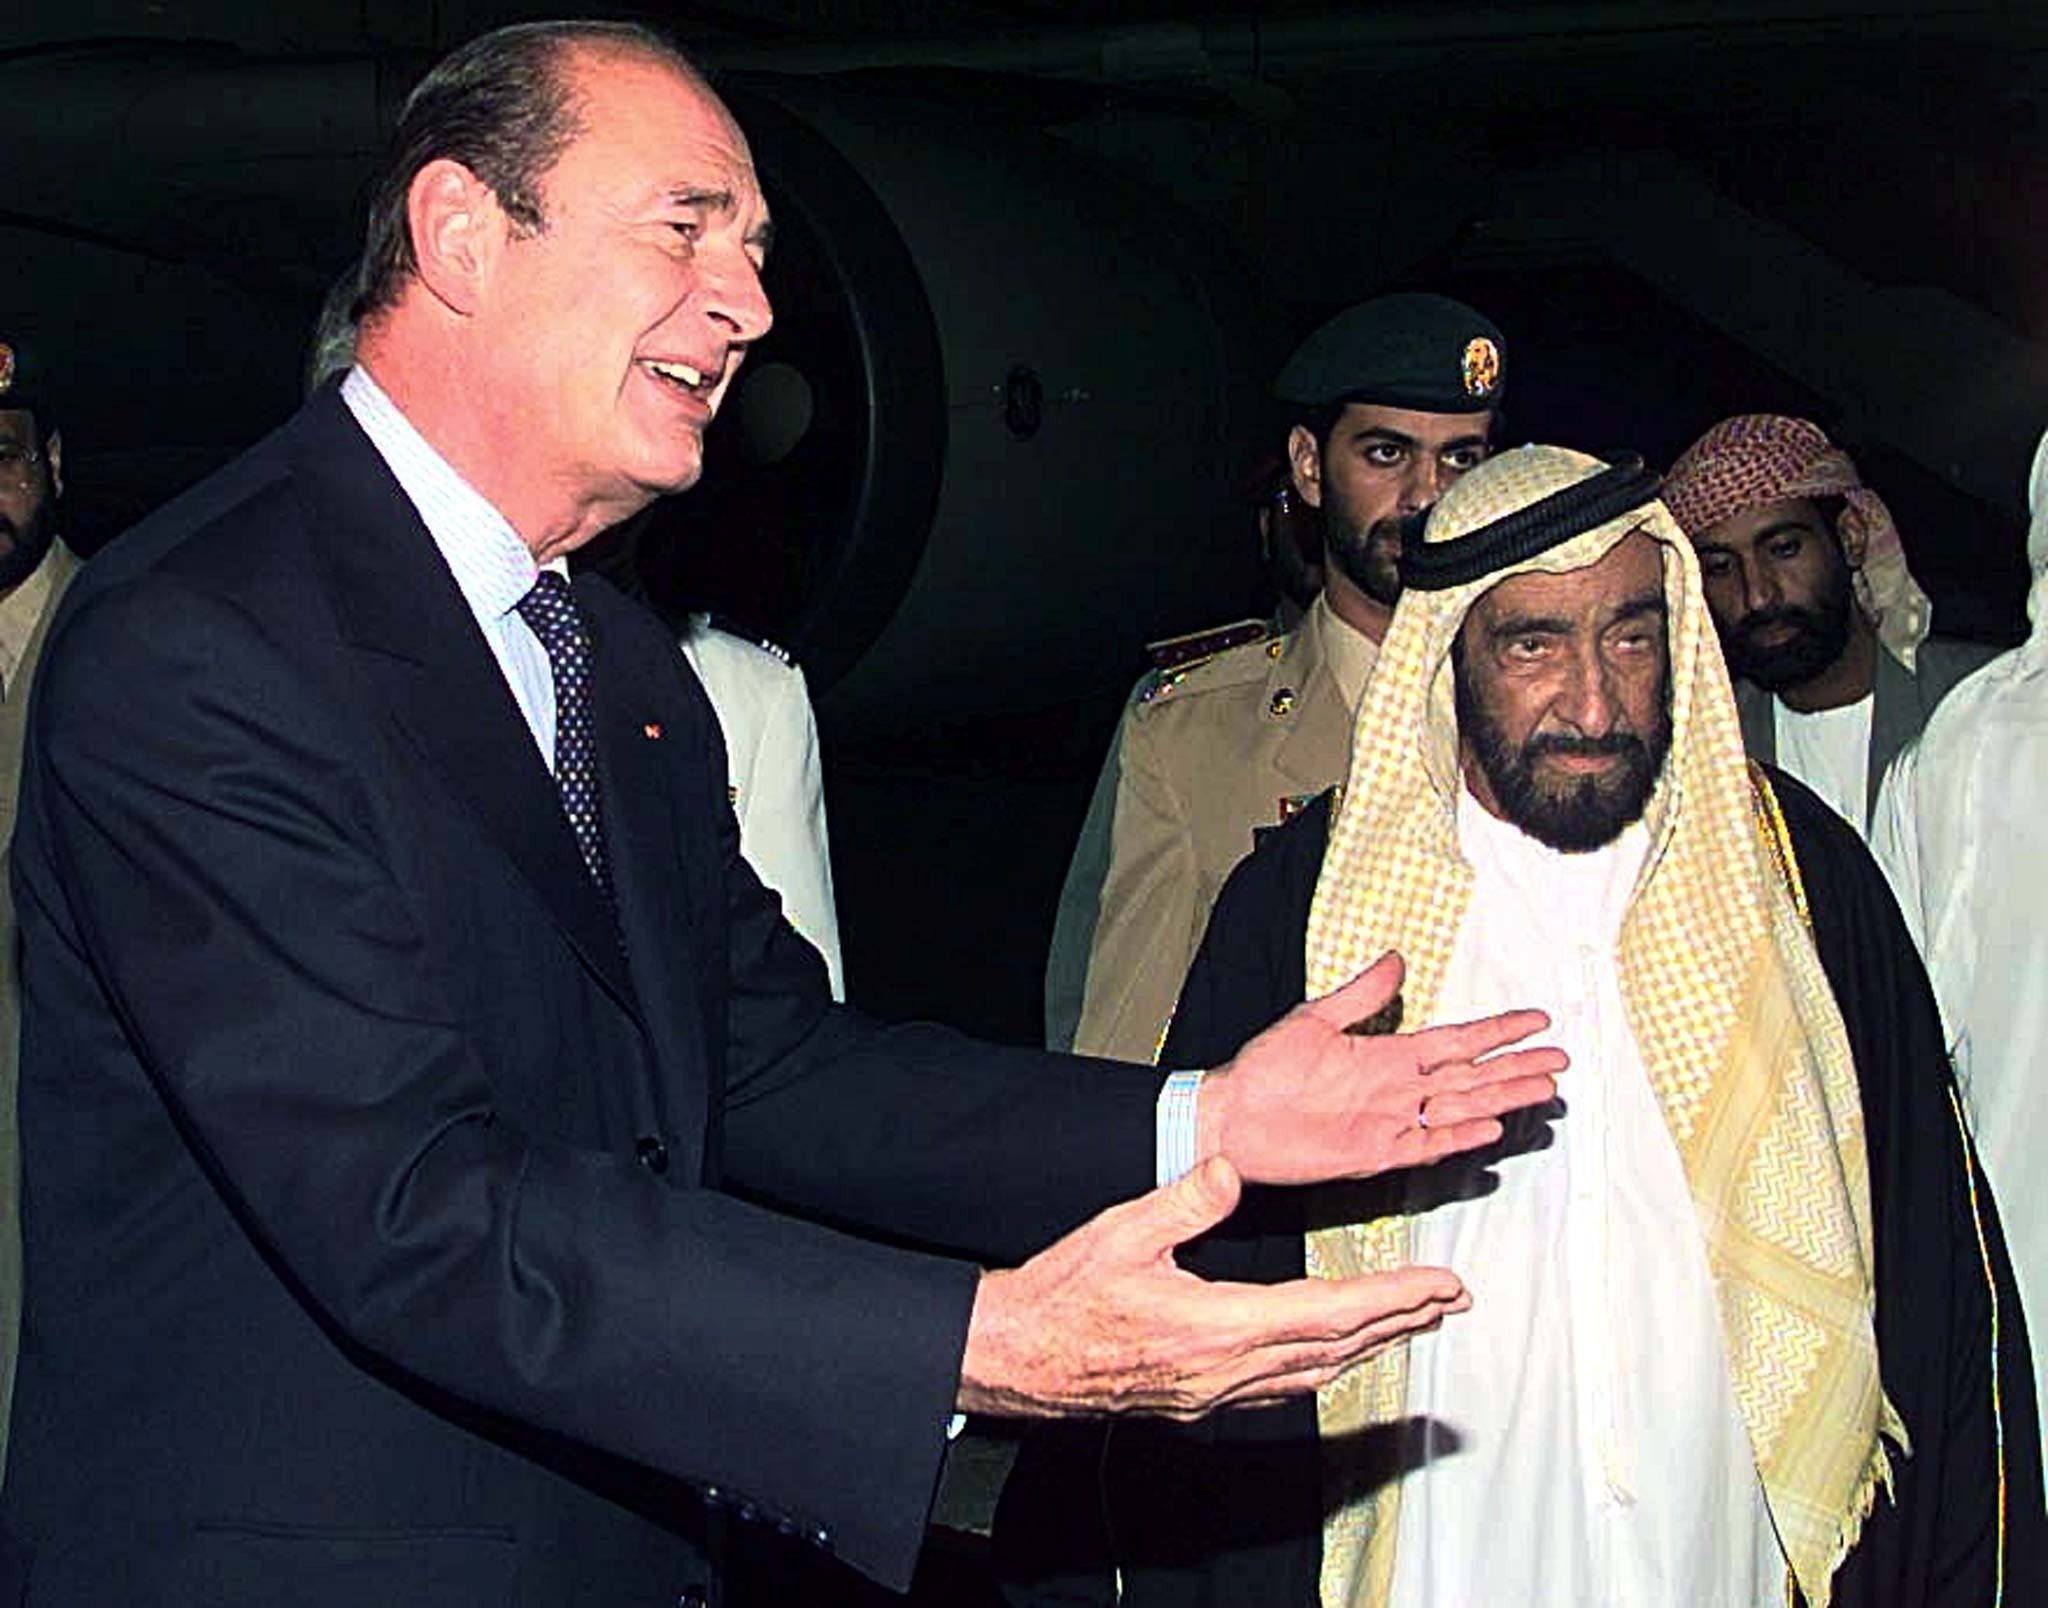 French President Jacques Chirac (L) gestures beside Sheikh Zayed bin Sultan al-Nahayan, the Late President of the United Arab Emirates. (File photo: Reuters)